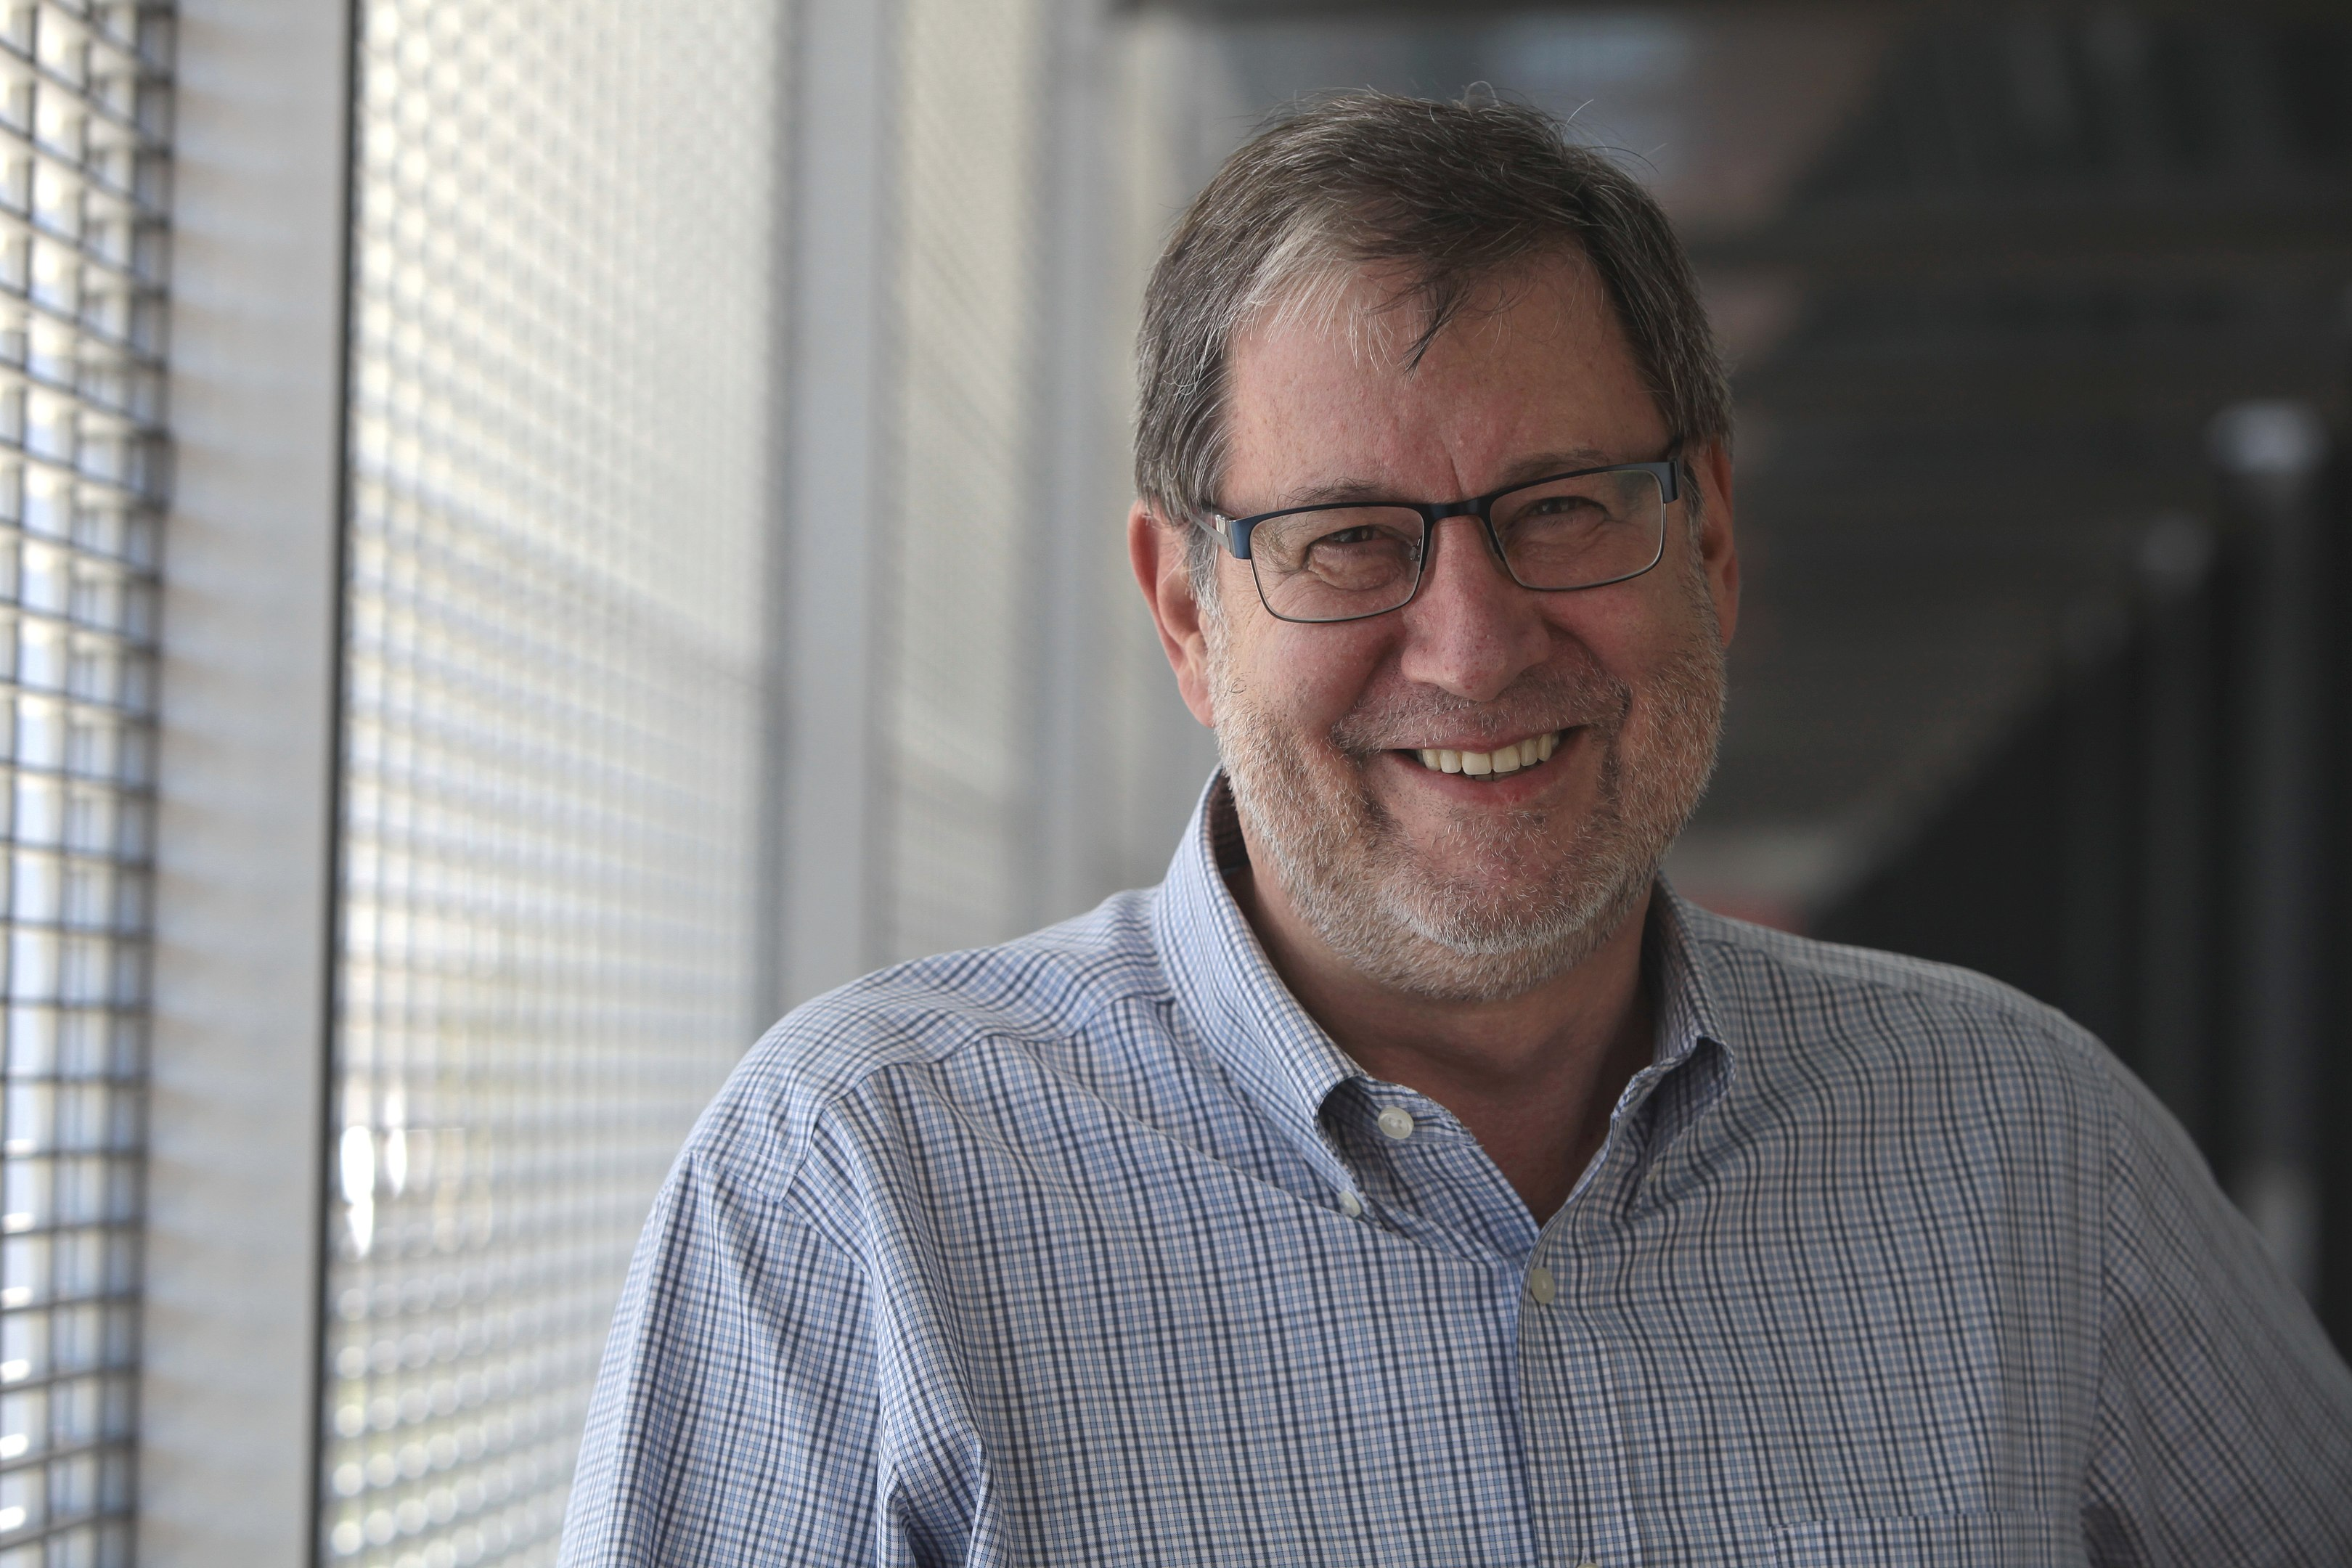 John Mattick is Senior Research Fellow with Visiting University Professorship at Green Templeton College, Oxford, and a Distinguished Visitor at St John's College, Oxford.